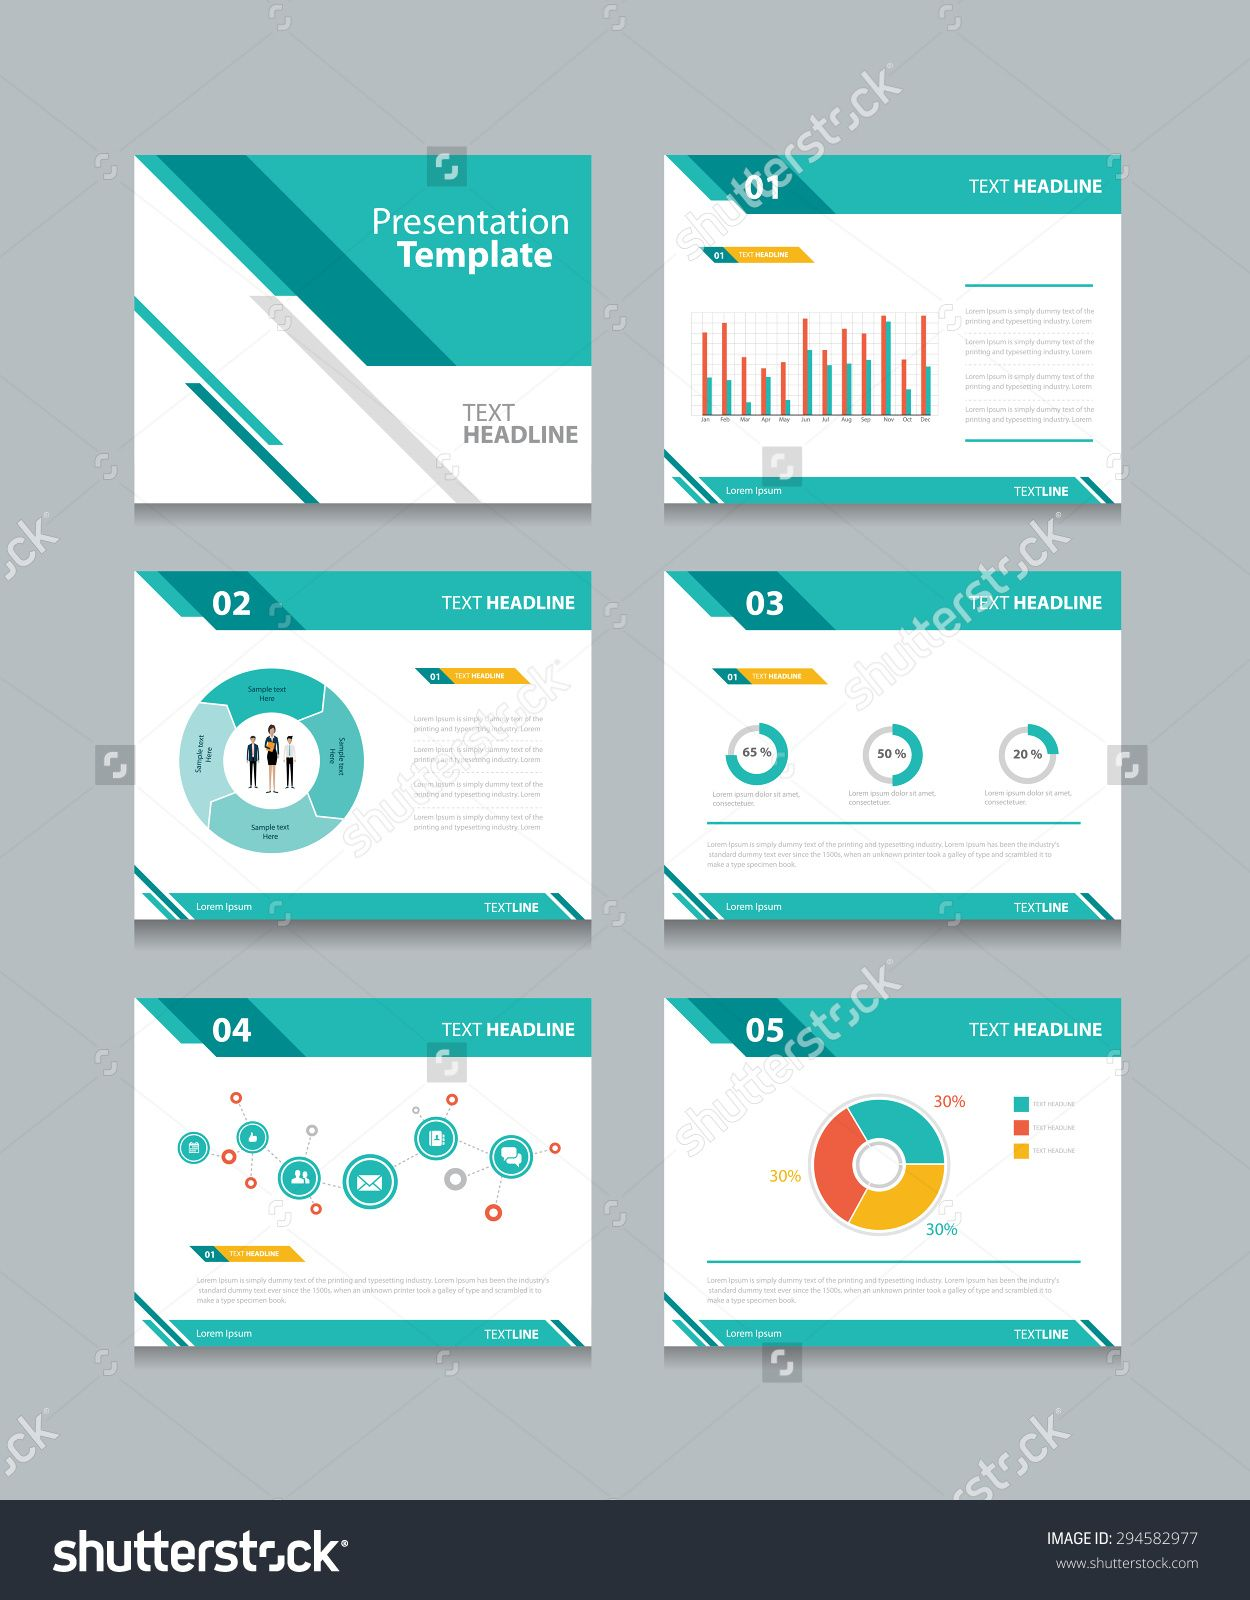 Business presentation template setpowerpoint template design business presentation template setpowerpoint template design backgrounds accmission Gallery